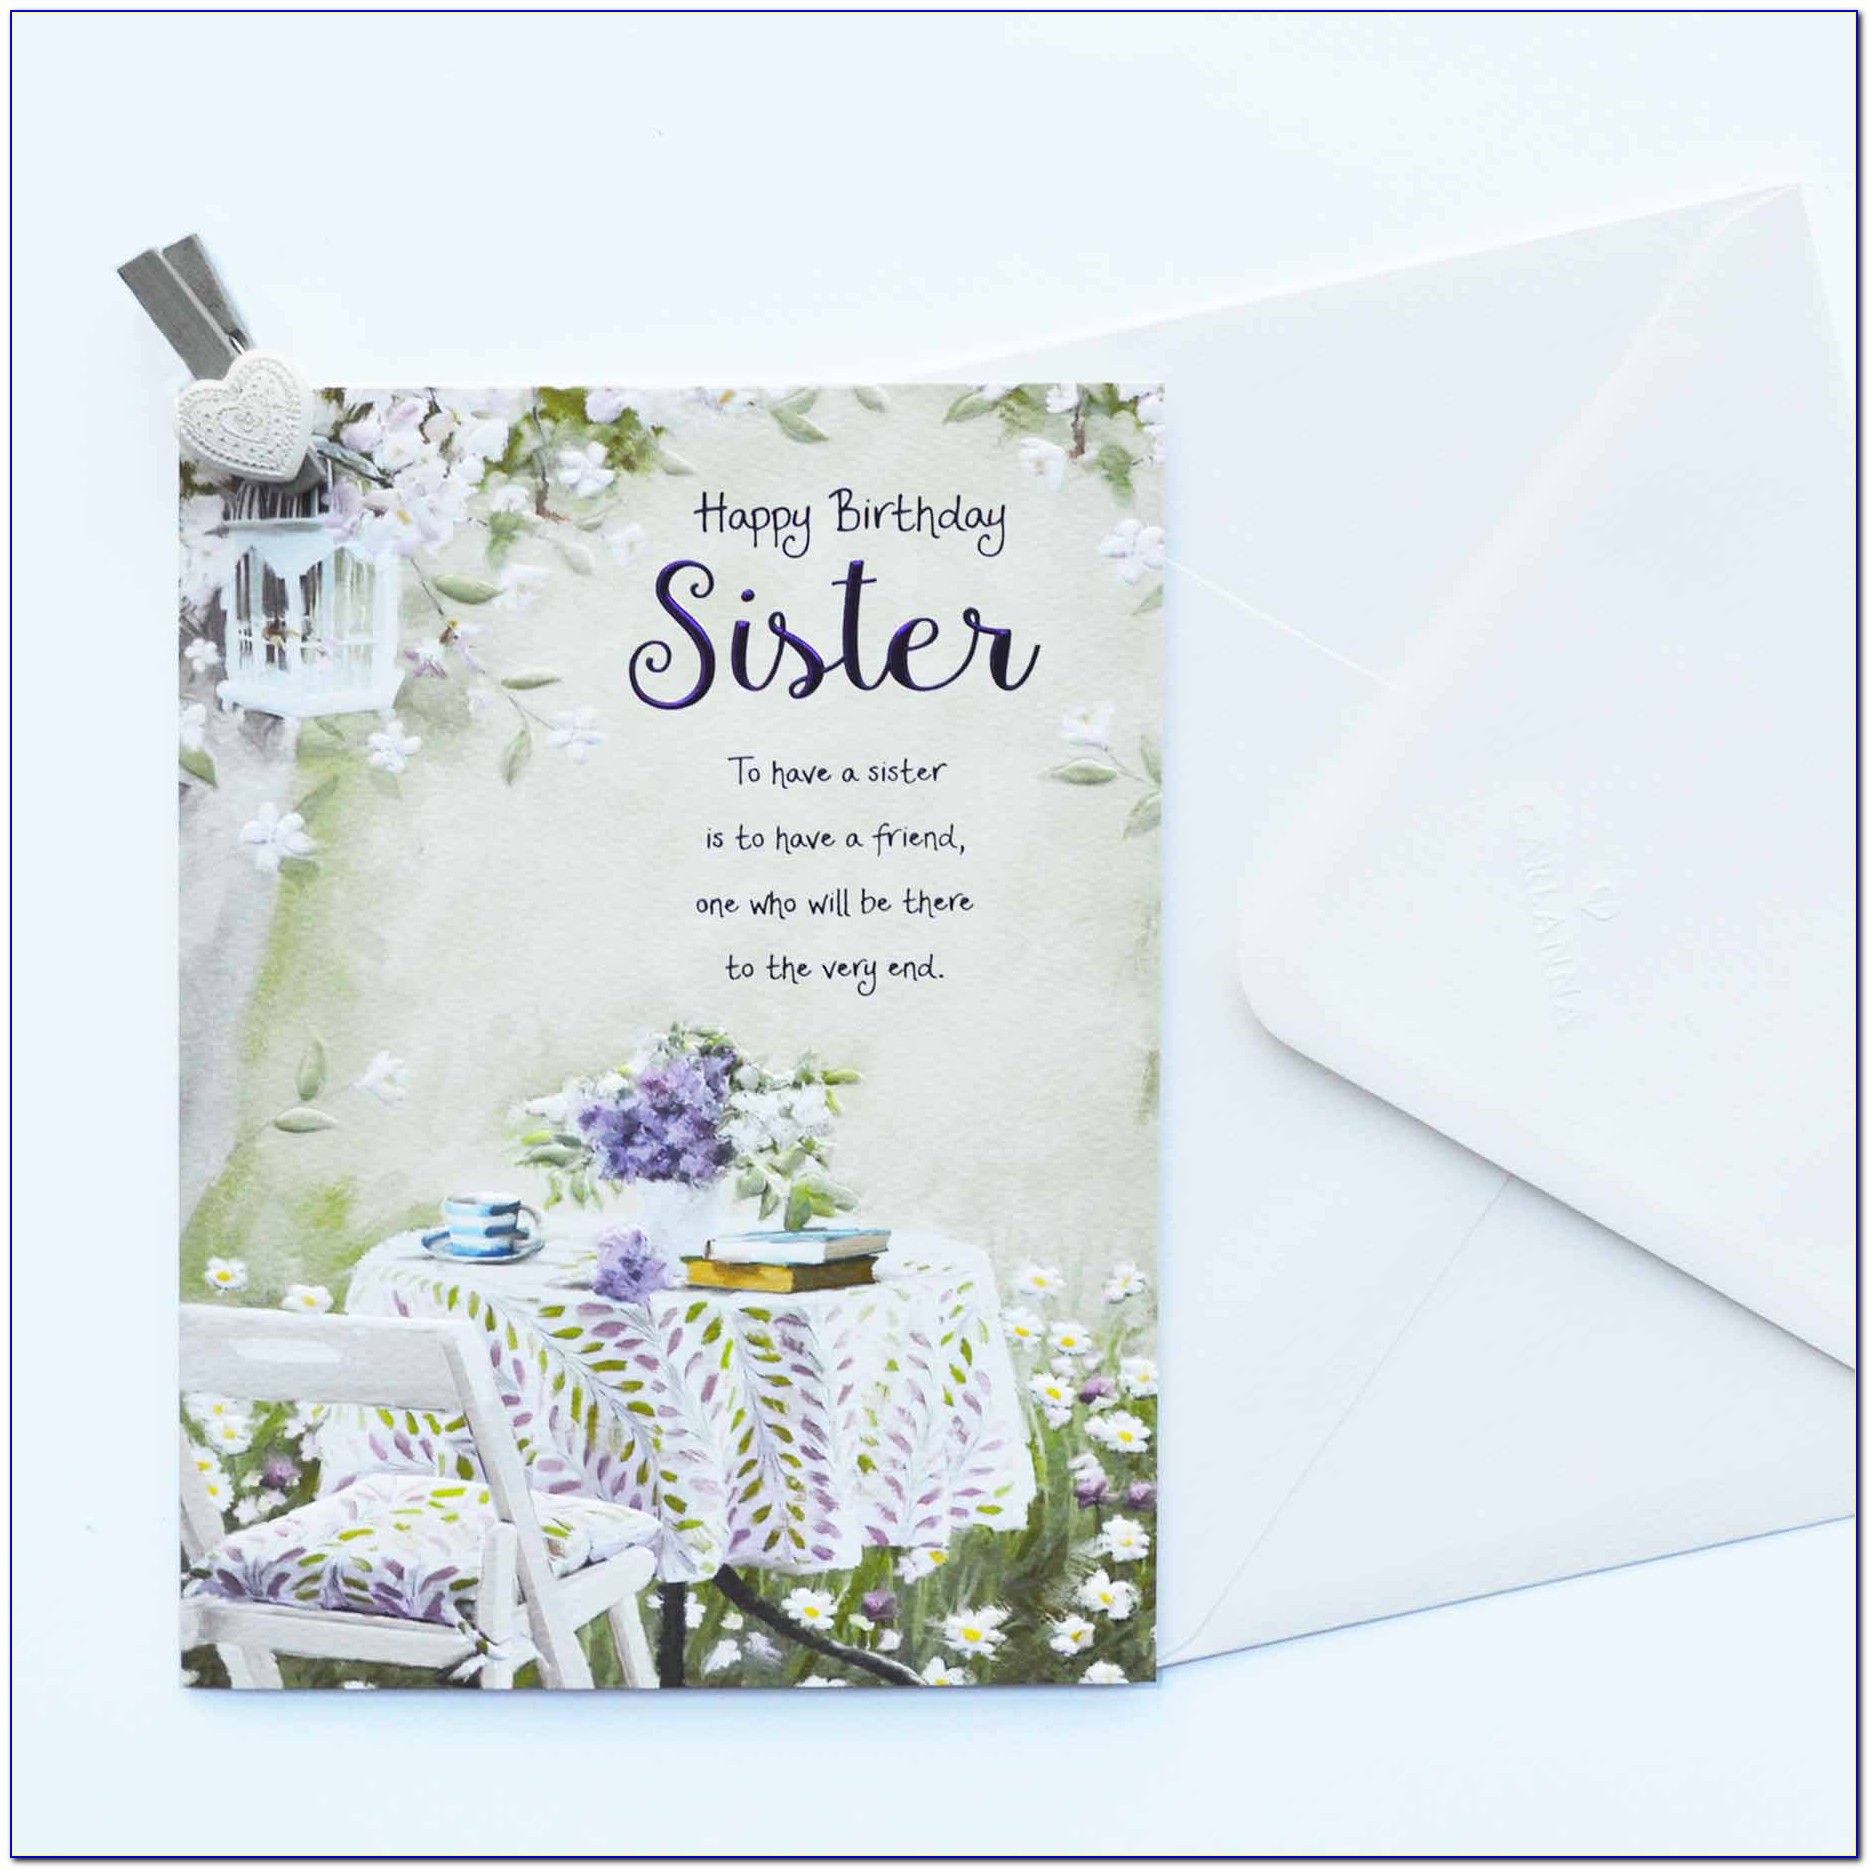 Free Birthday Card Images For Daughter